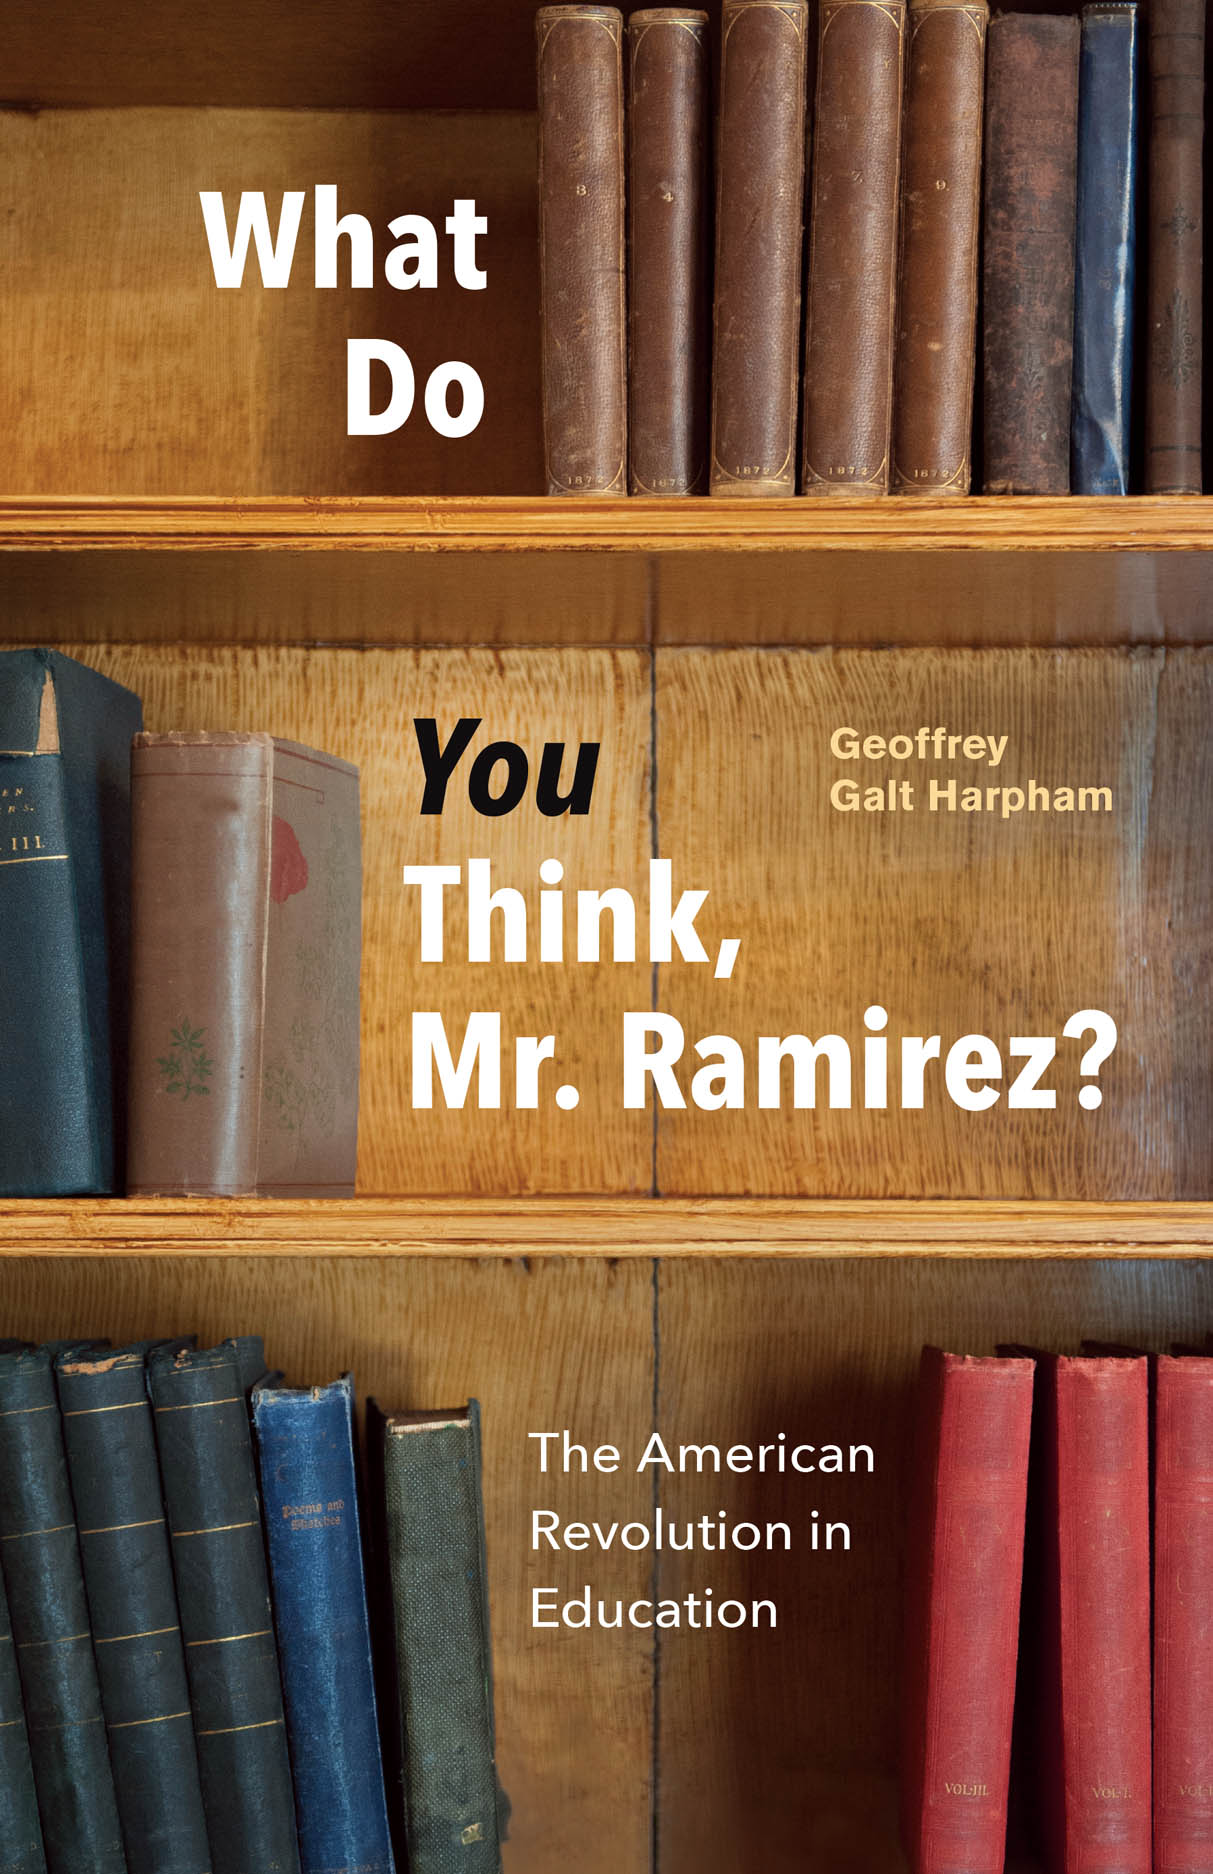 What Do You Think, Mr. Ramirez?: The American Revolution in Education